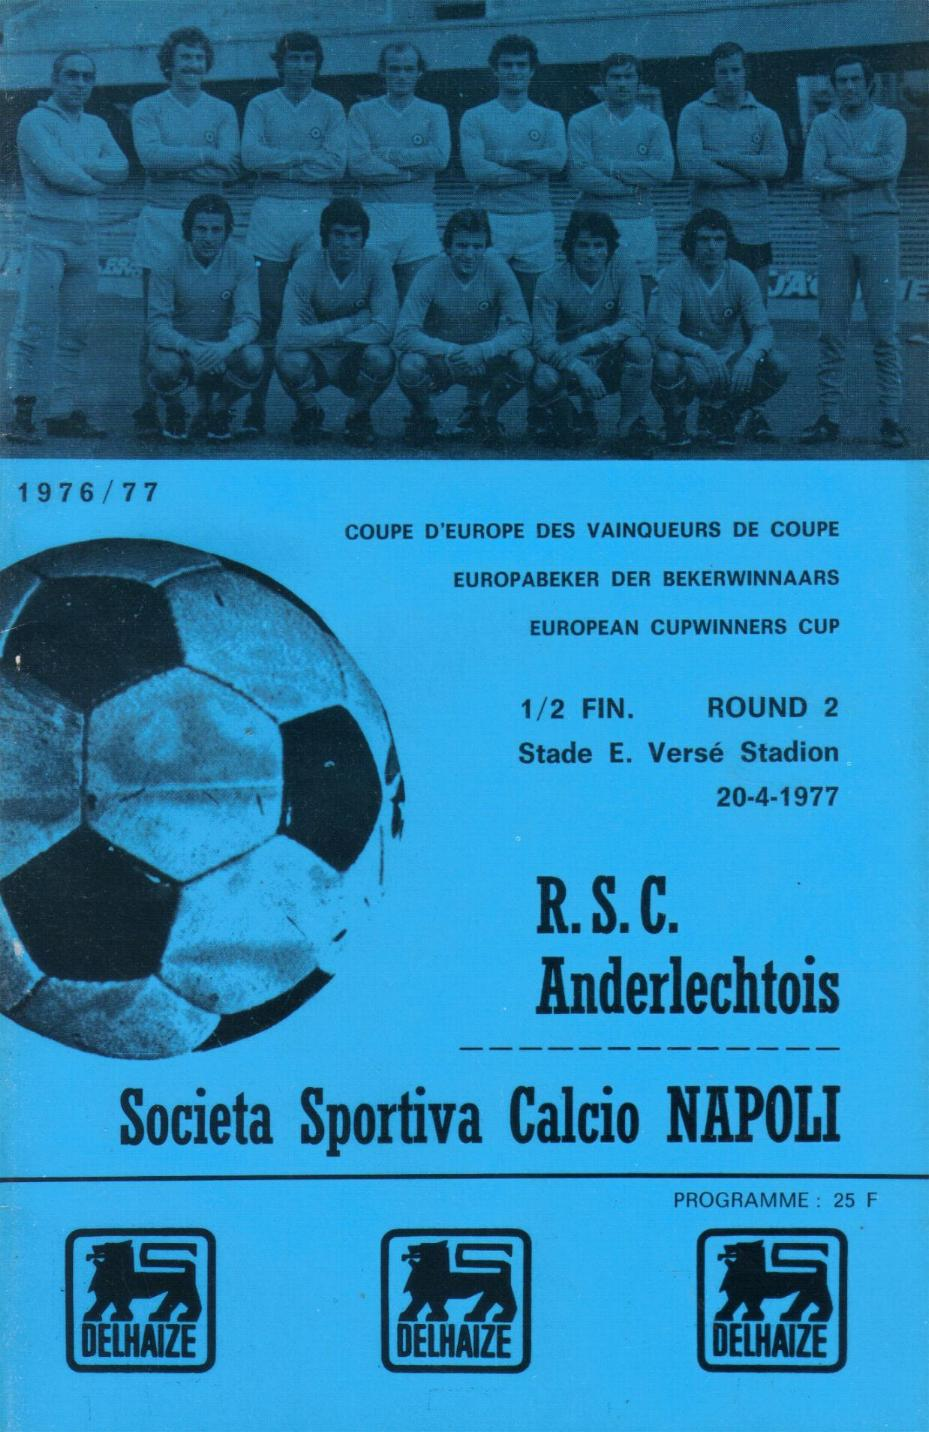 1977 CUP WINNERS CUP SEMI-FINAL - ANDERLECHT v NAPOLI